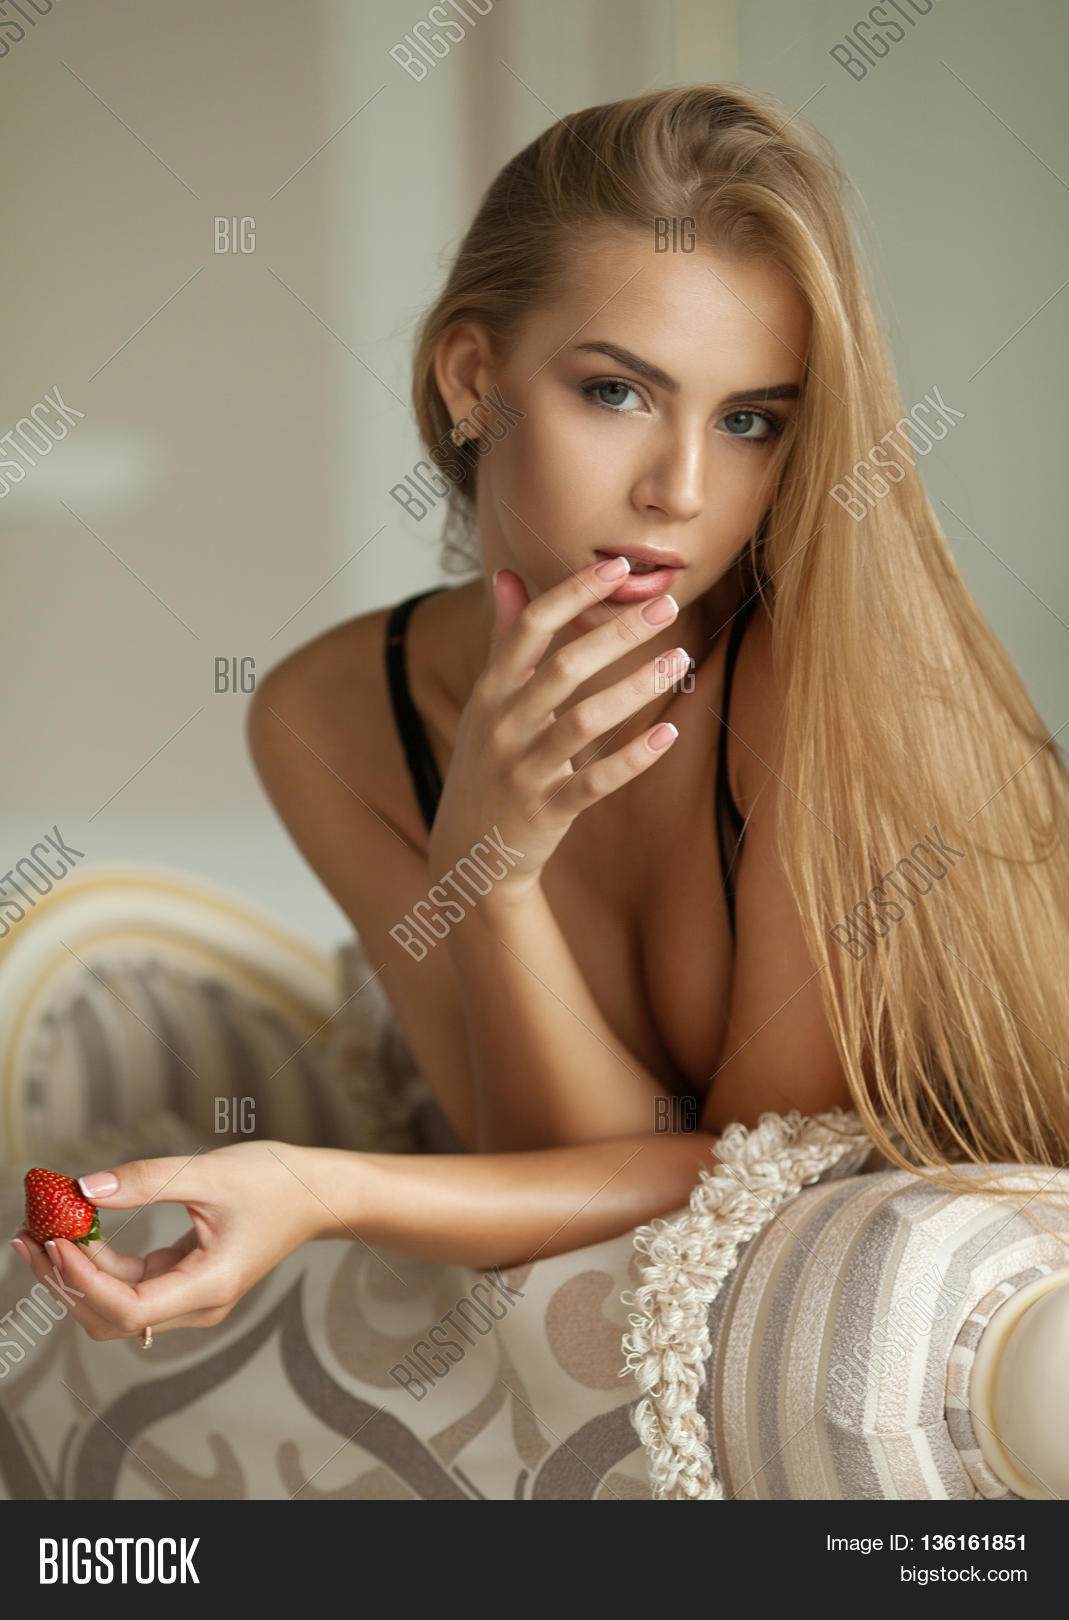 50ee8b69f5 Beautiful and sexy young blonde woman lying on bed eating strawberries